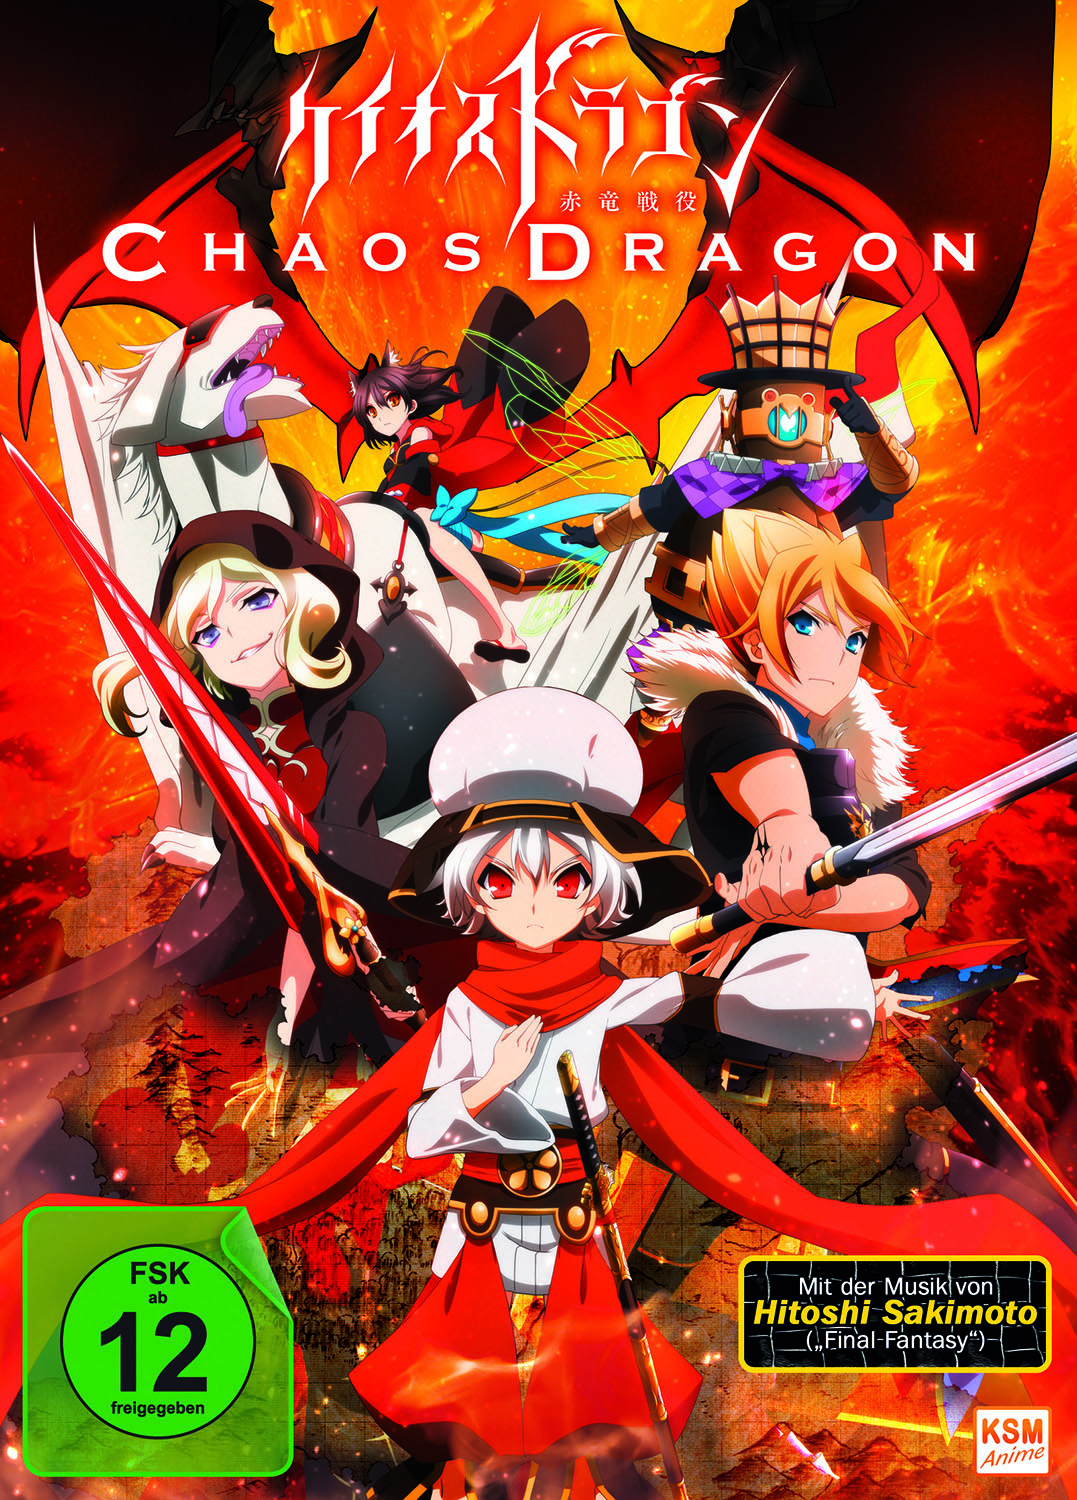 Chaos Dragon - Volume 1 Episode 01-04 im Sammelschuber